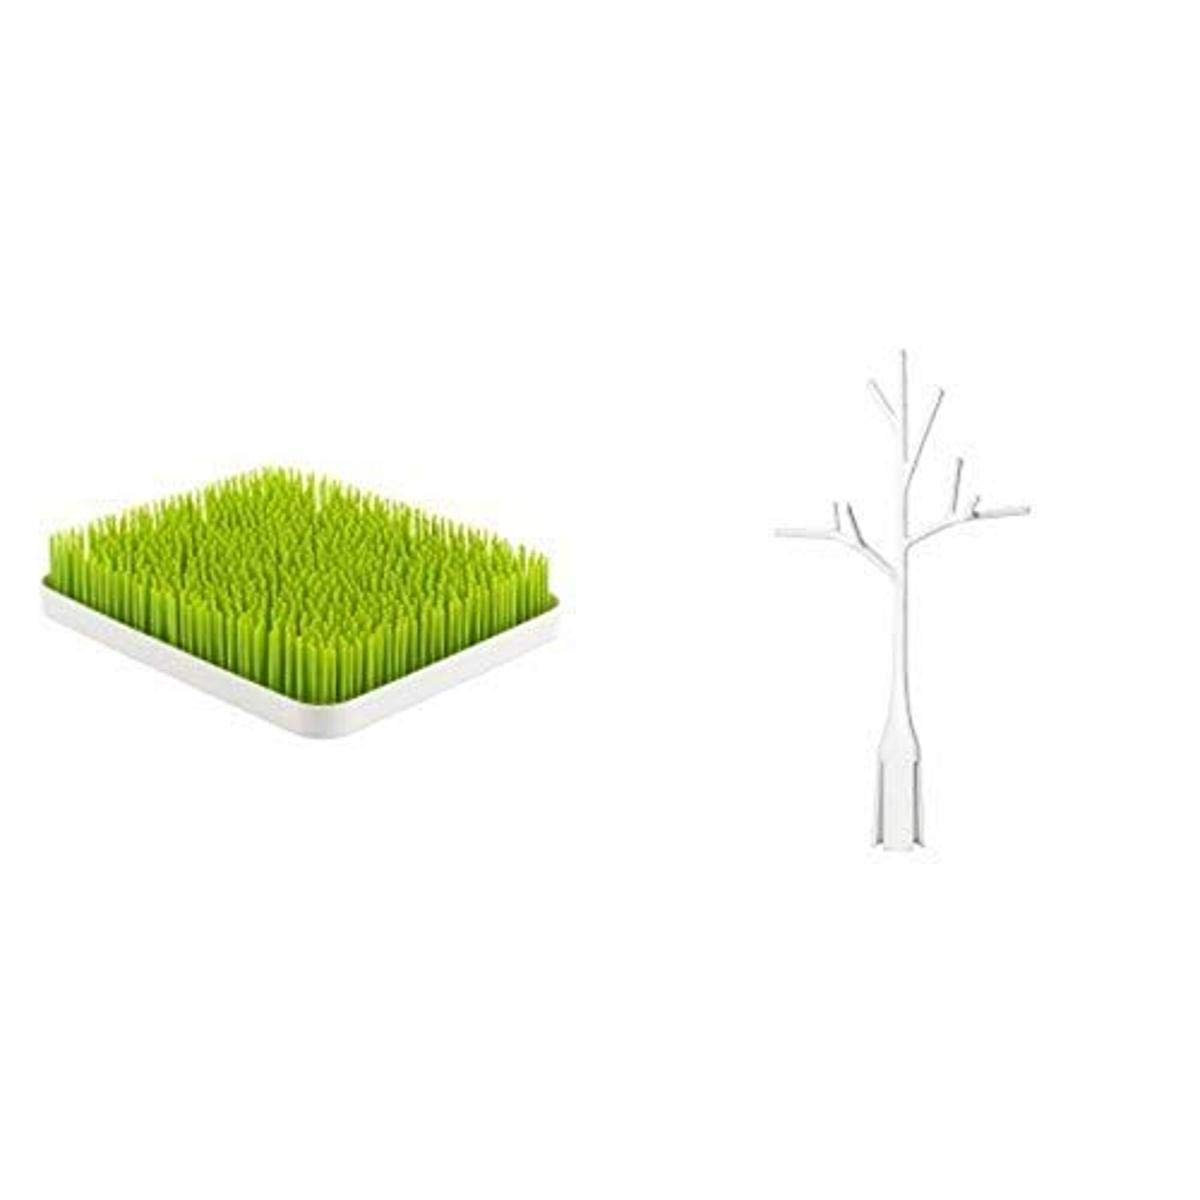 Boon Twig Grass and Lawn Drying Rack Accessory, White,Twig White with Lawn Countertop Drying Rack Green